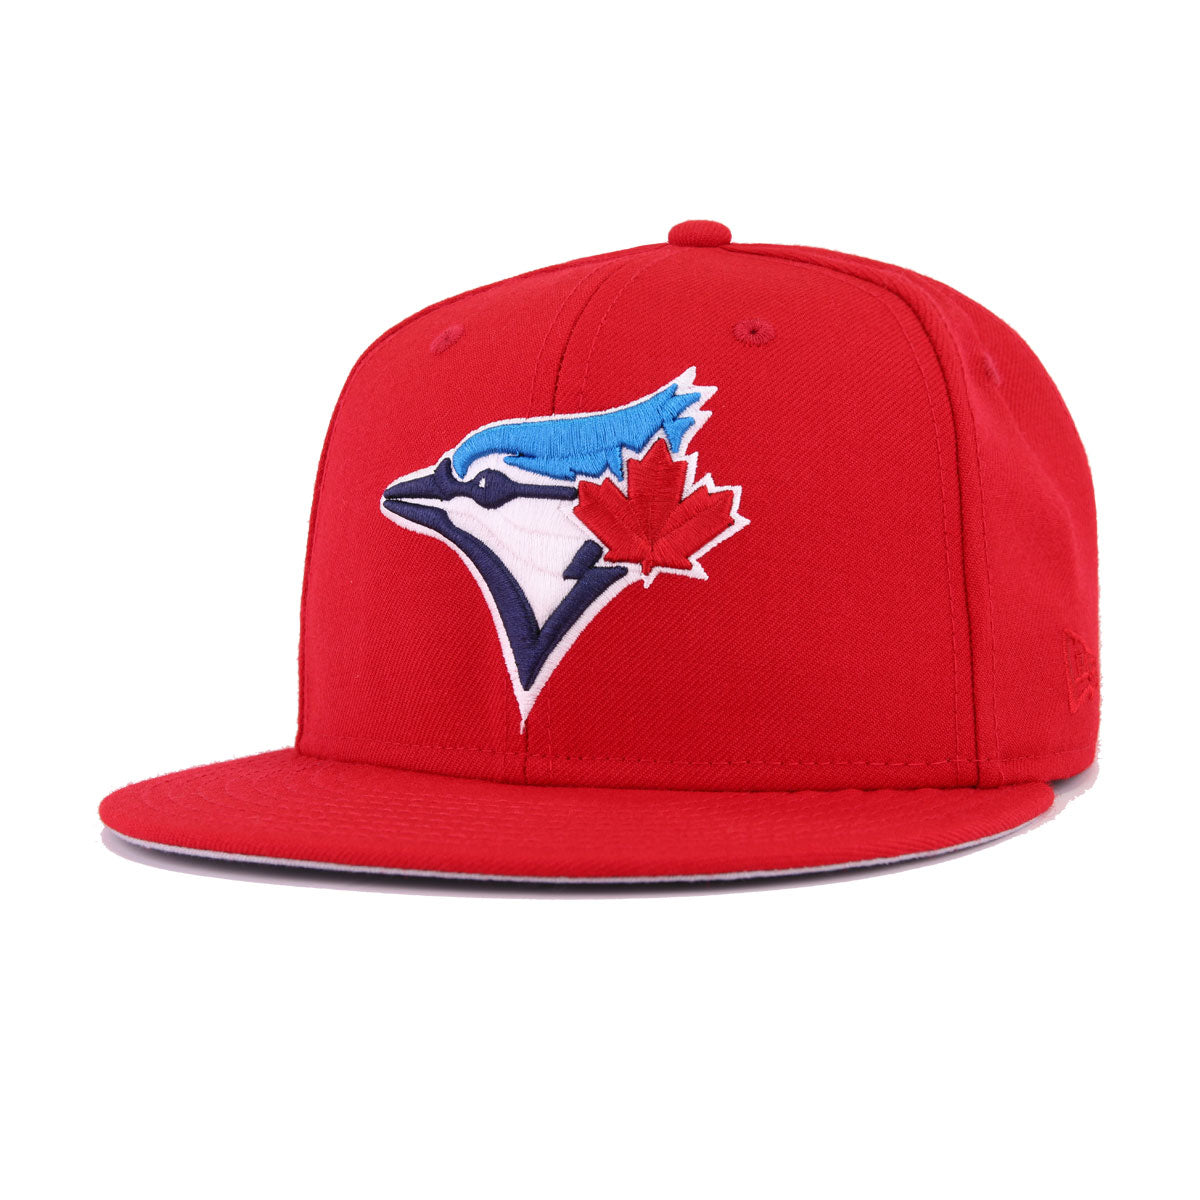 the best attitude d7ef7 5d39c Toronto Blue Jays Scarlet 30th Anniversary New Era 59Fifty Fitted